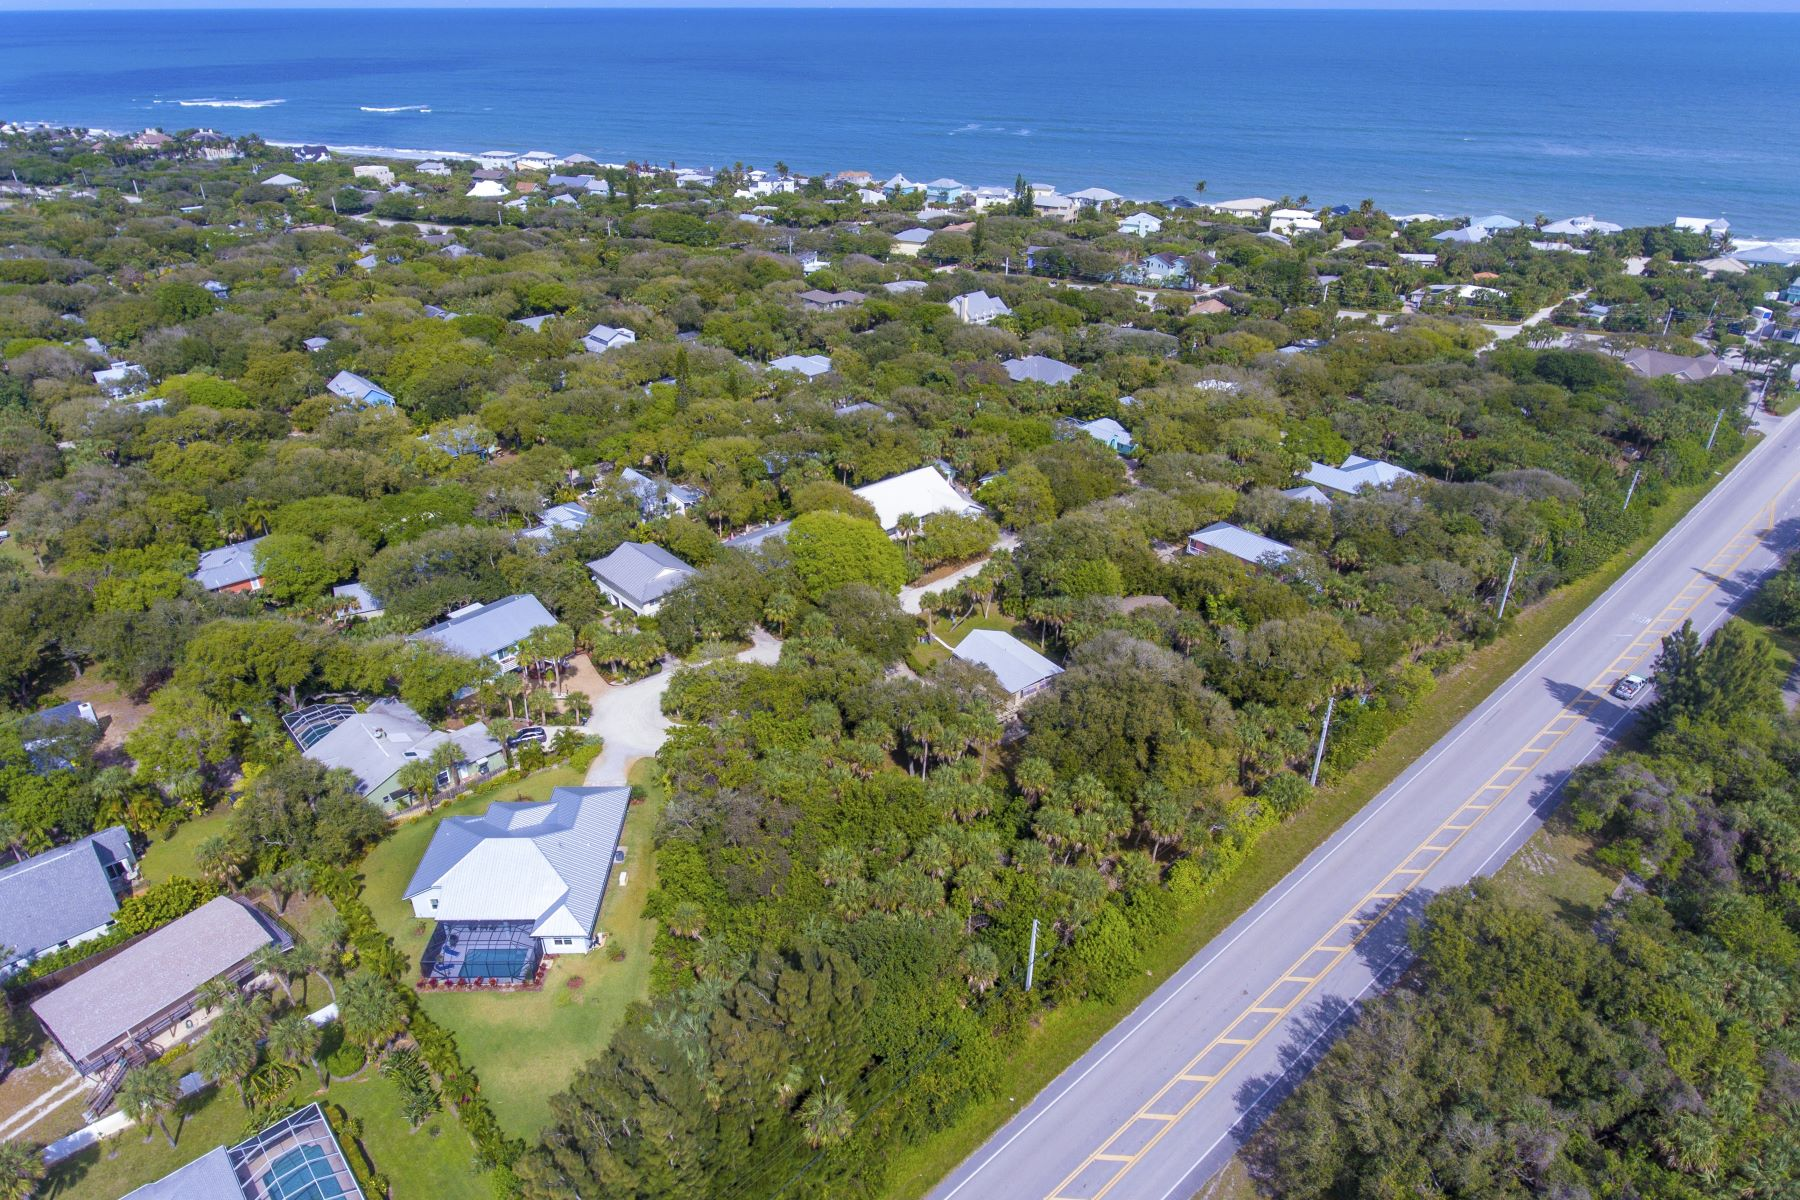 Land for Sale at 1981 W Shell Lane Vero Beach, Florida 32963 United States